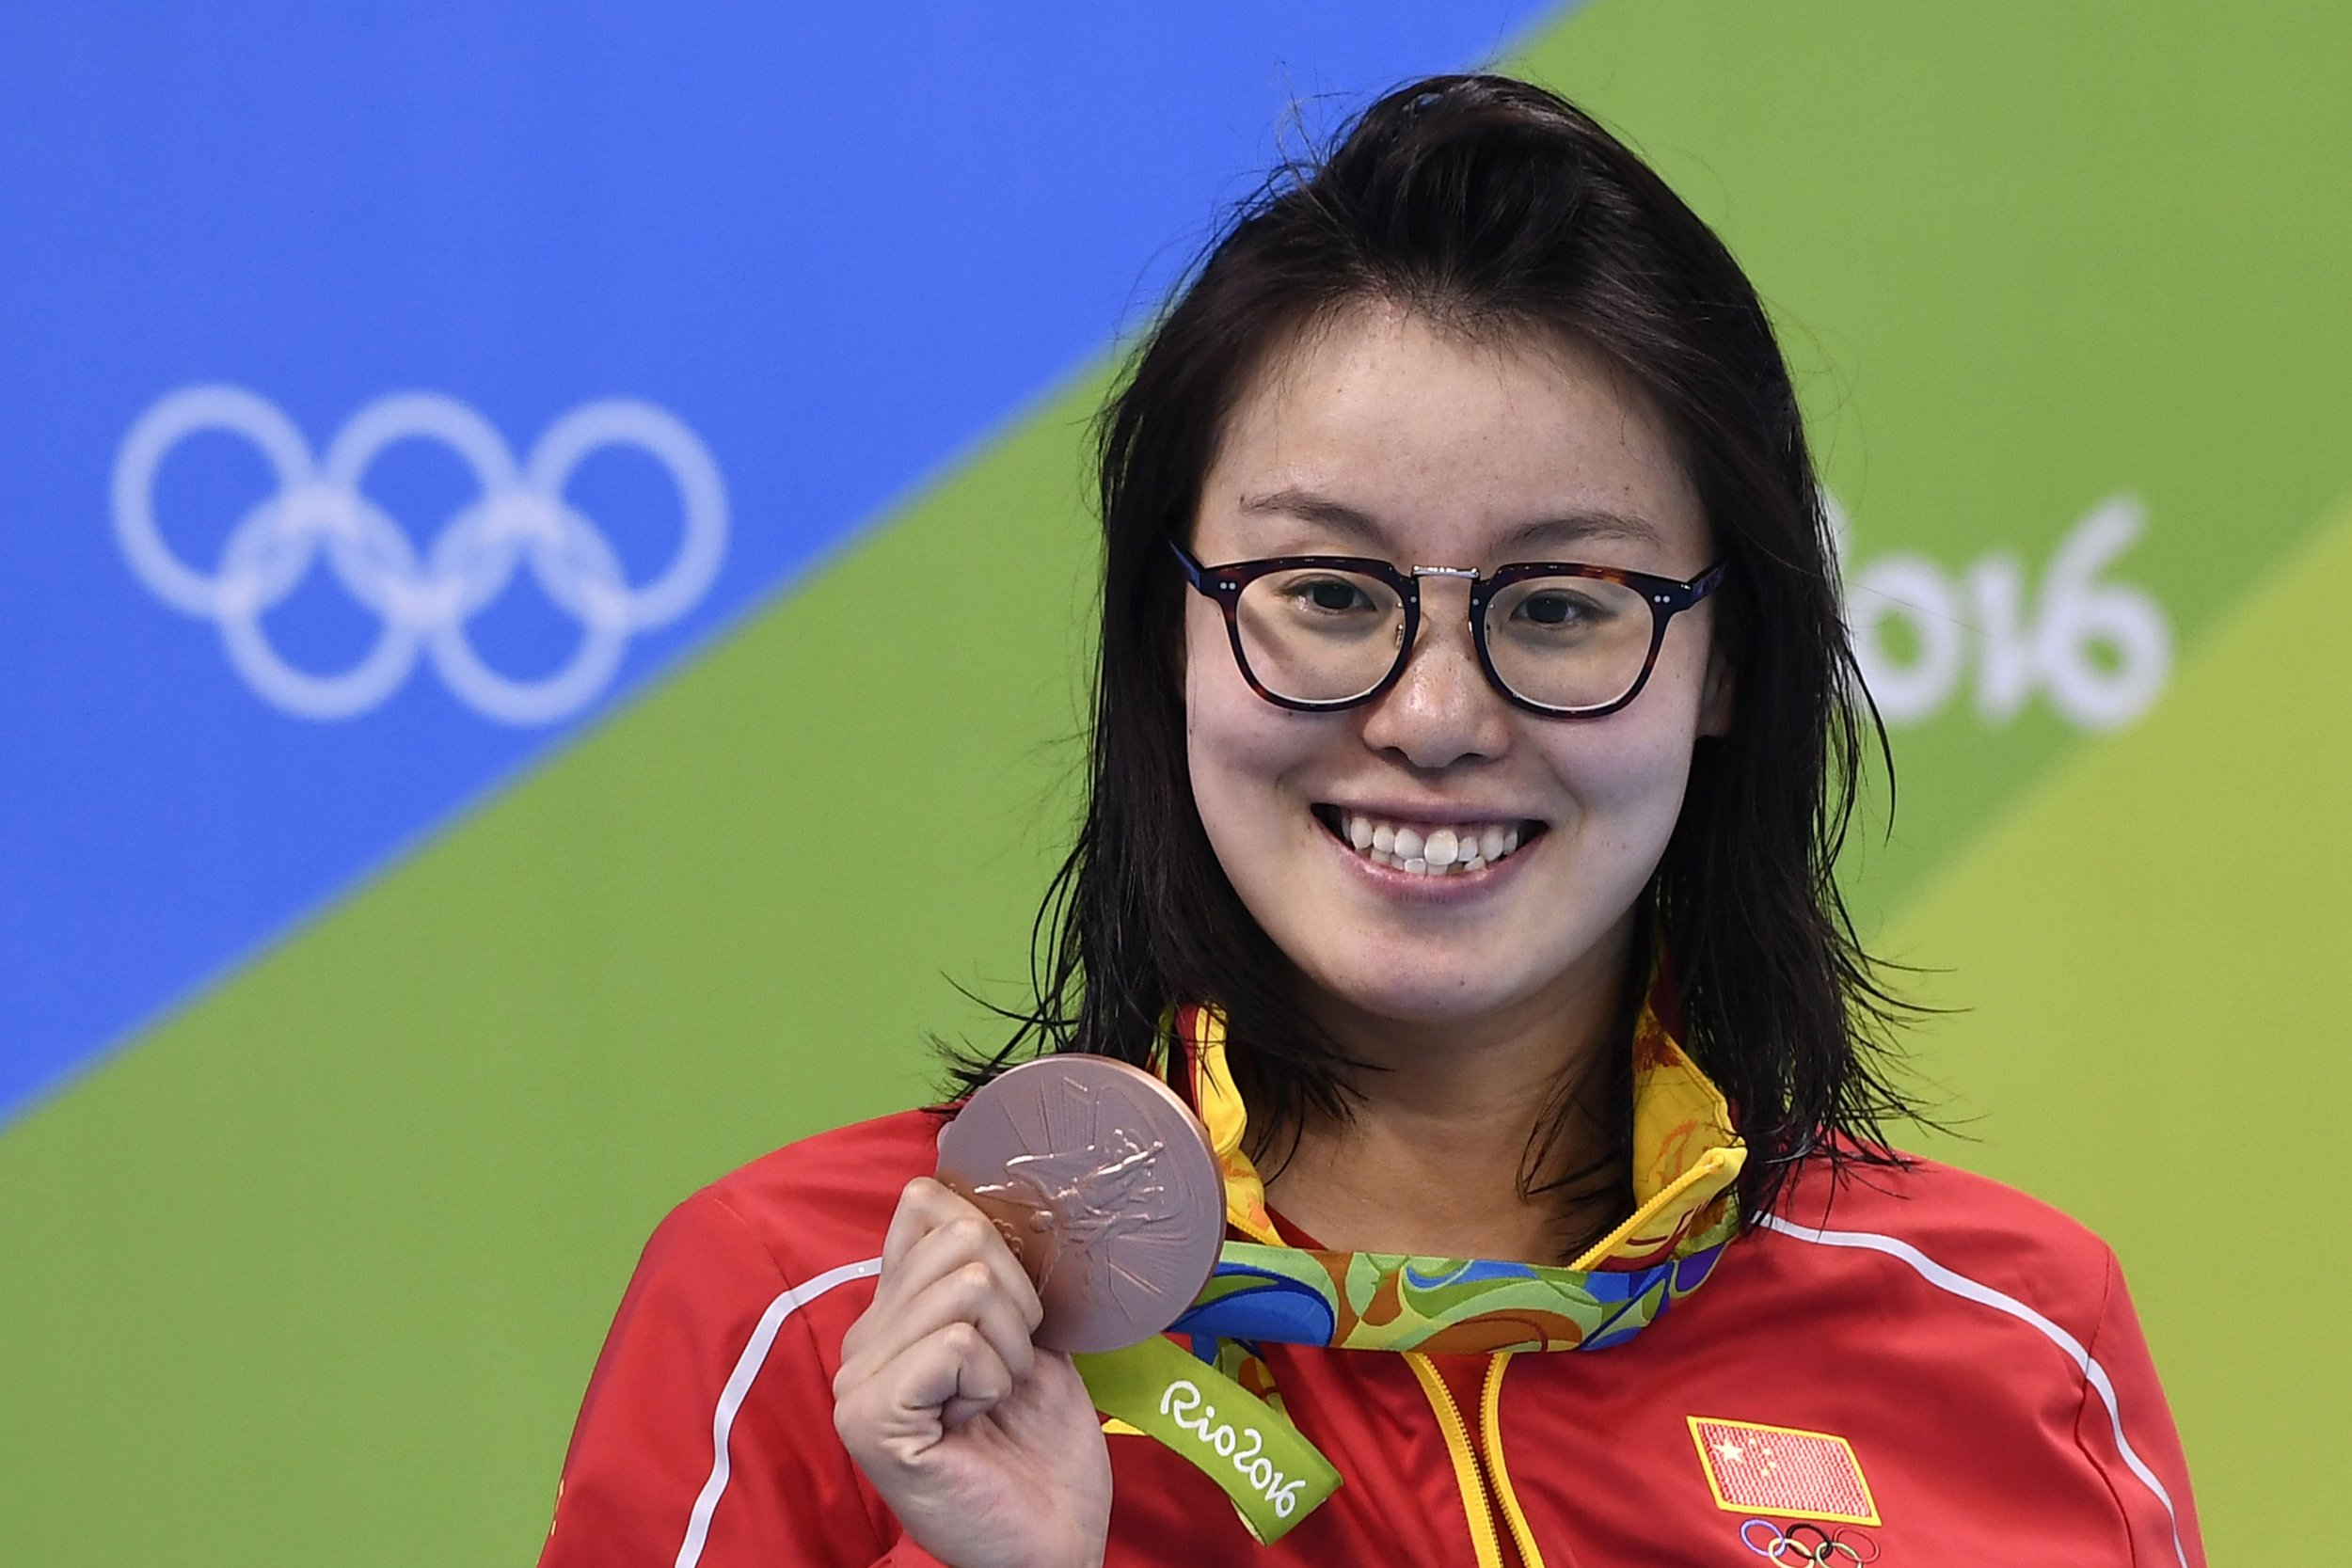 Japan's Fu Yuanhui poses with her bronze medal on the podium of the Women's 100m Backstroke during the swimming event at the Rio 2016 Olympic Games at the Olympic Aquatics Stadium in Rio de Janeiro on August 8, 2016. / AFP PHOTO / GABRIEL BOUYSGABRIEL BOUYS/AFP/Getty Images